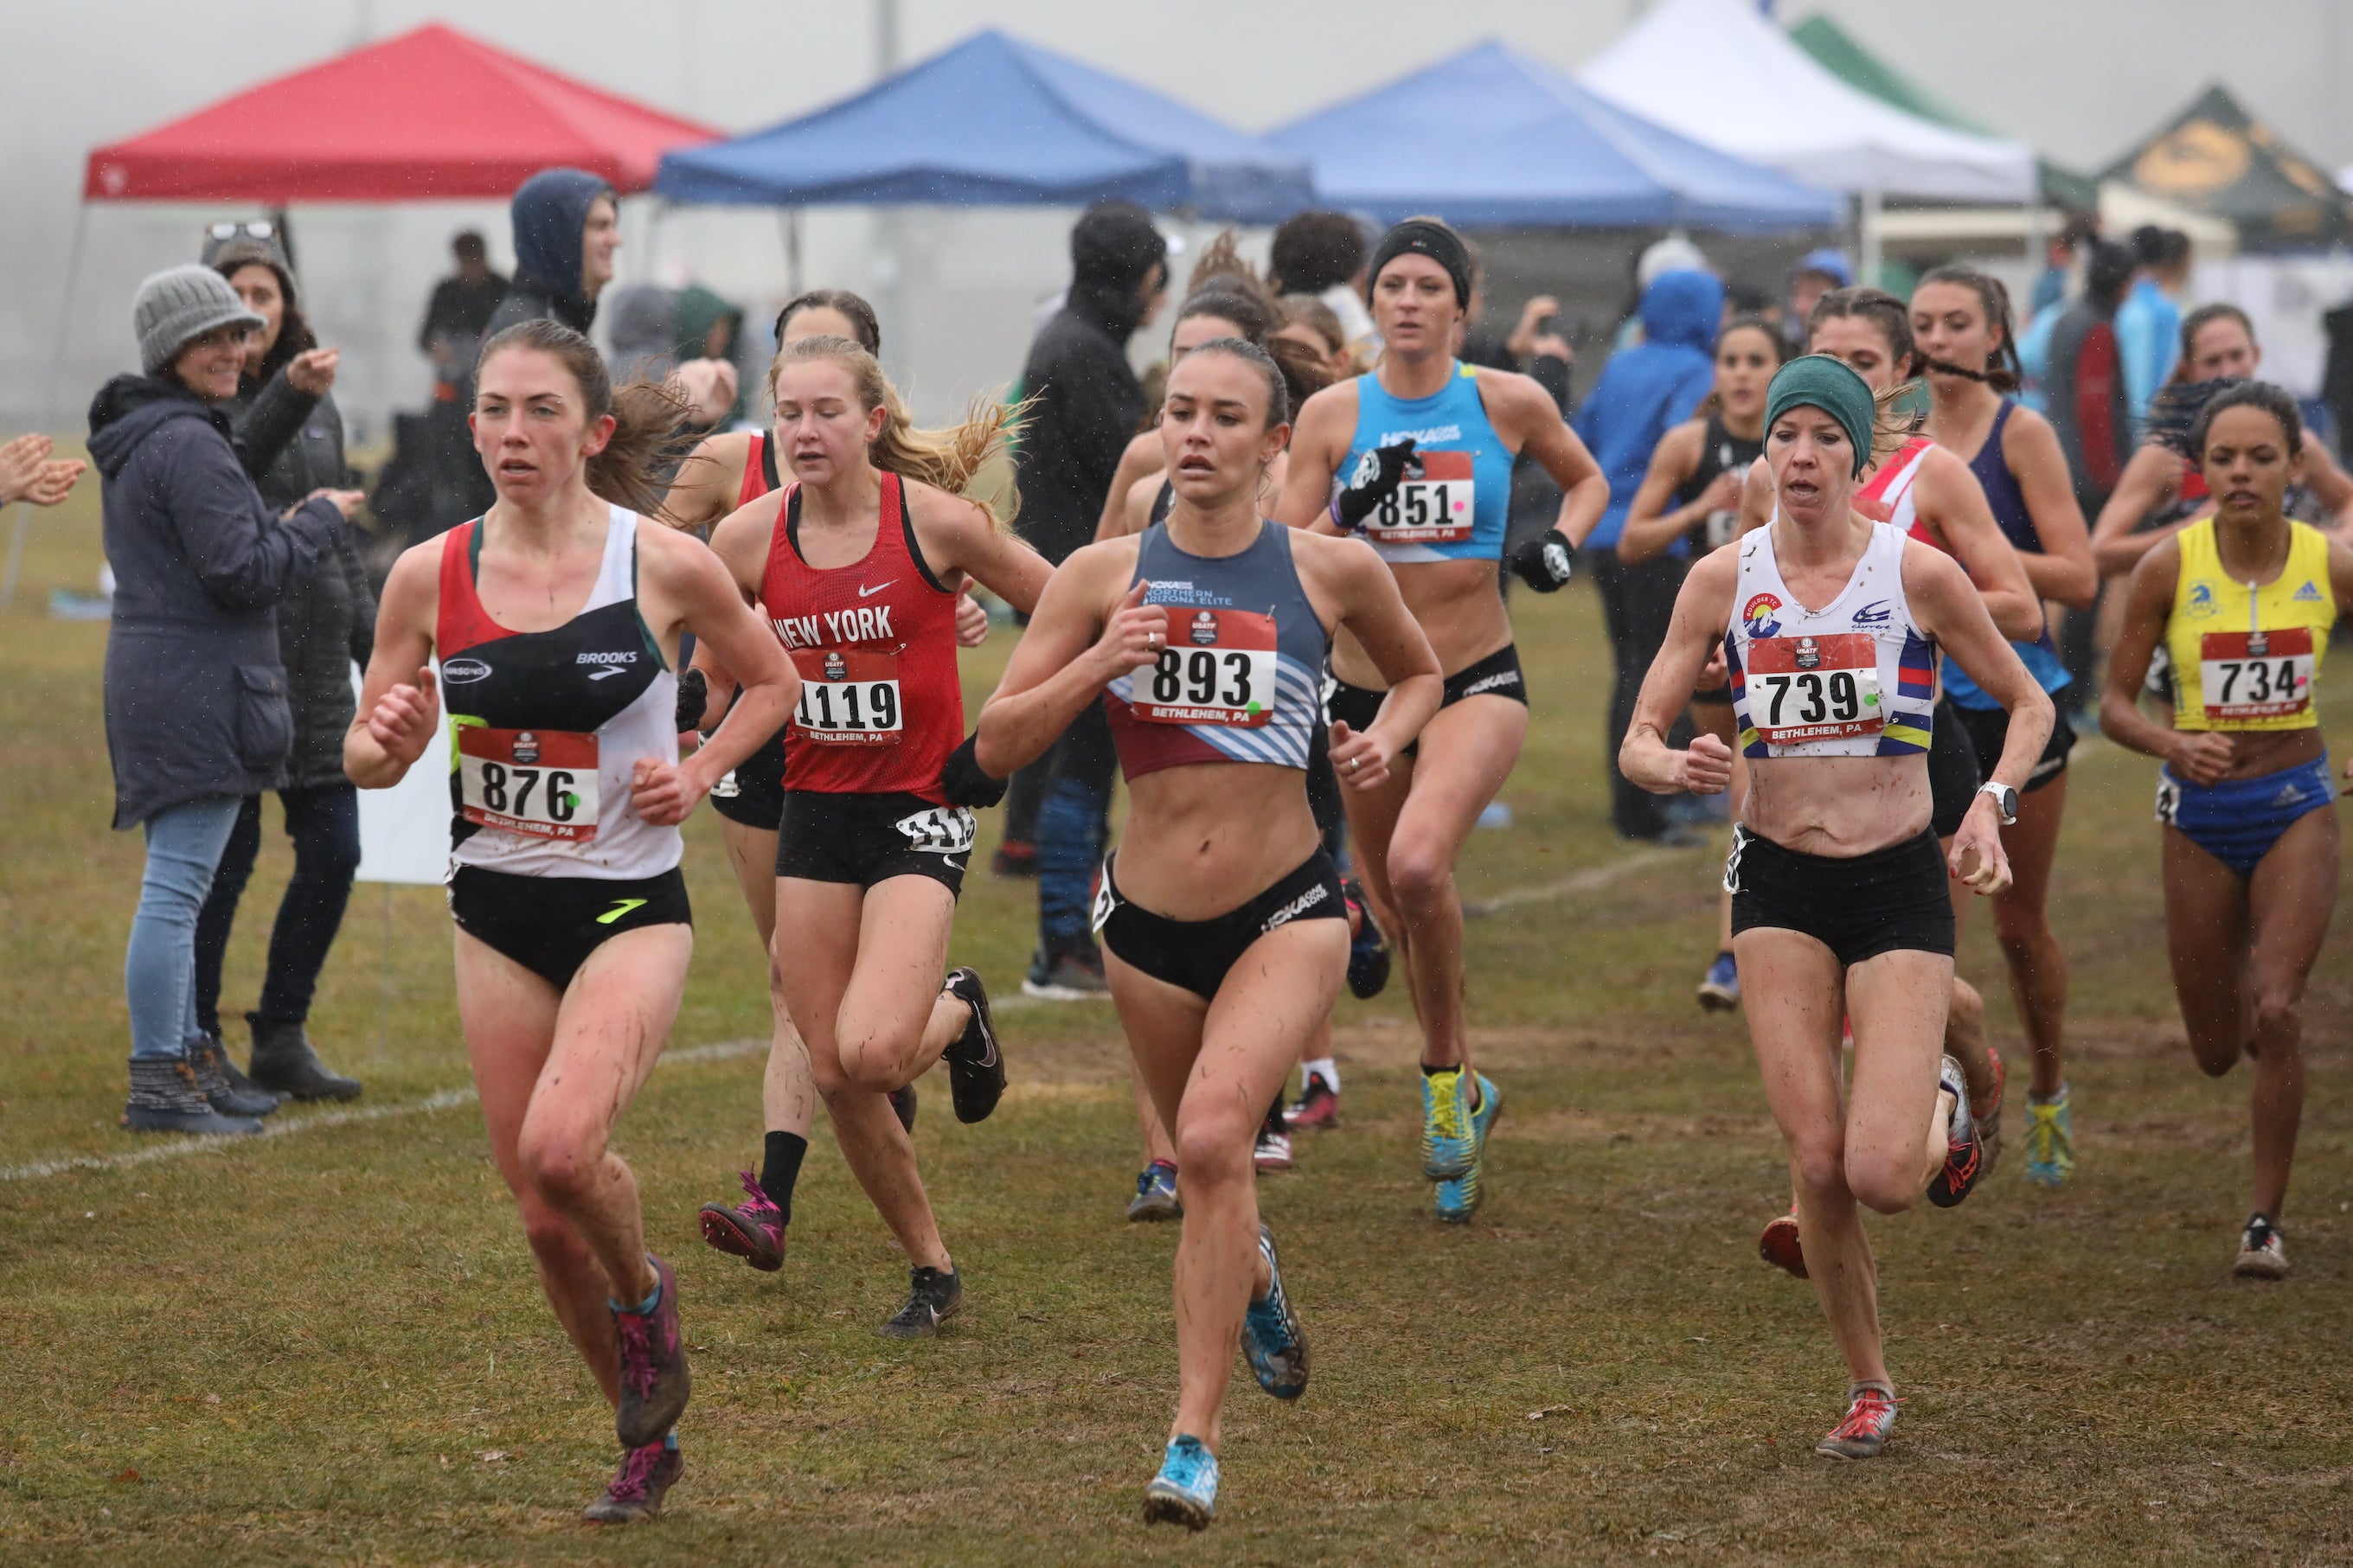 The early lead pack at the 2019 USATF Club Cross Country Championships includes Olivia Pratt (bib 876), Danielle Shanahan (bib 893), Melissa Dock (739), Katelyn Tuohy (1119), and Leah O'Conn0r (851).